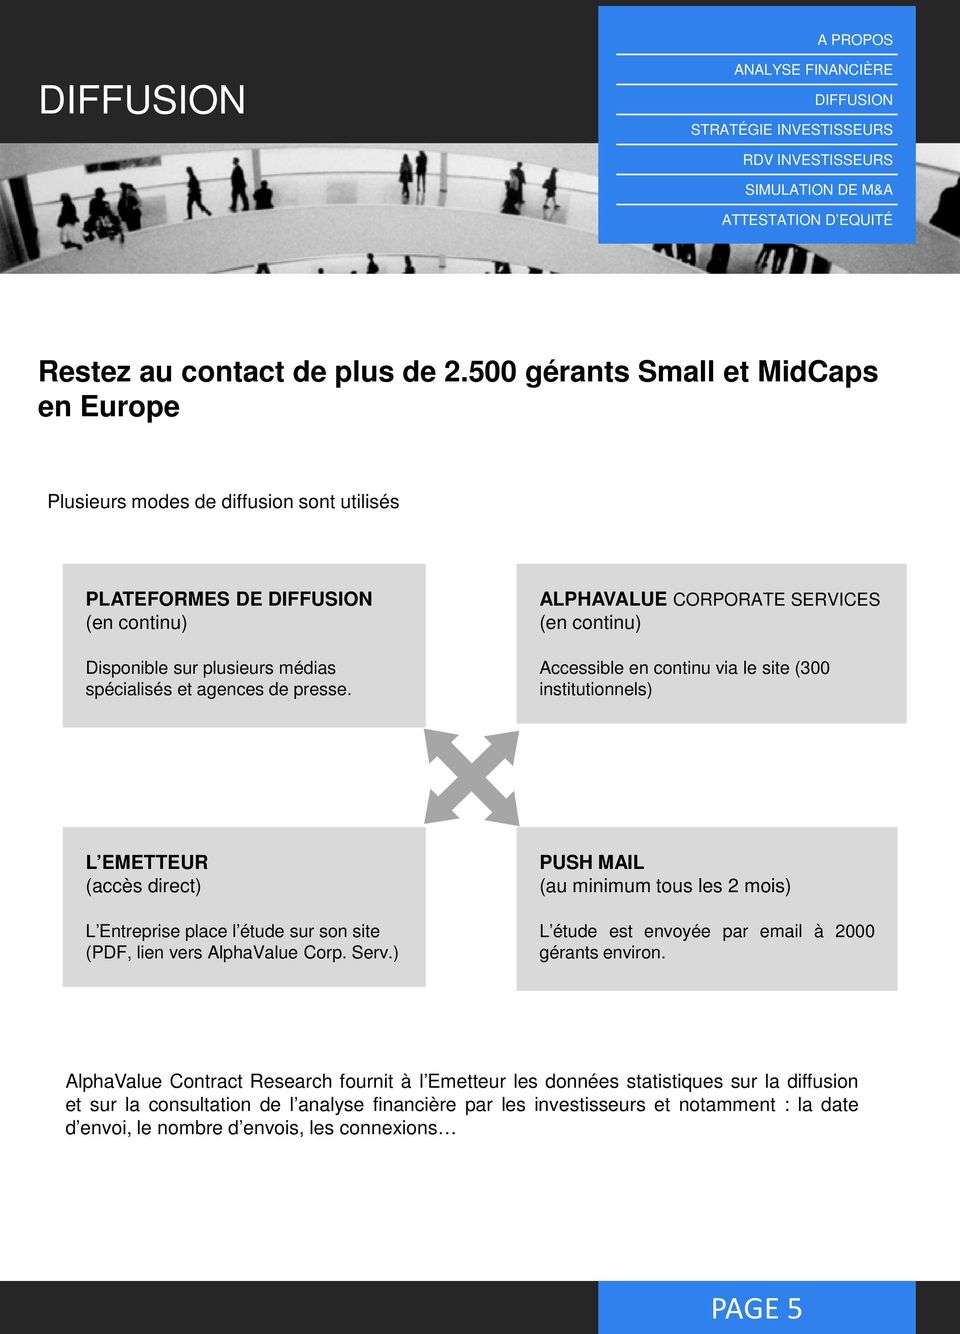 ALPHAVALUE CORPORATE SERVICES (en continu) Accessible en continu via le site (300 institutionnels) L EMETTEUR (accès direct) L Entreprise place l étude sur son site (PDF, lien vers